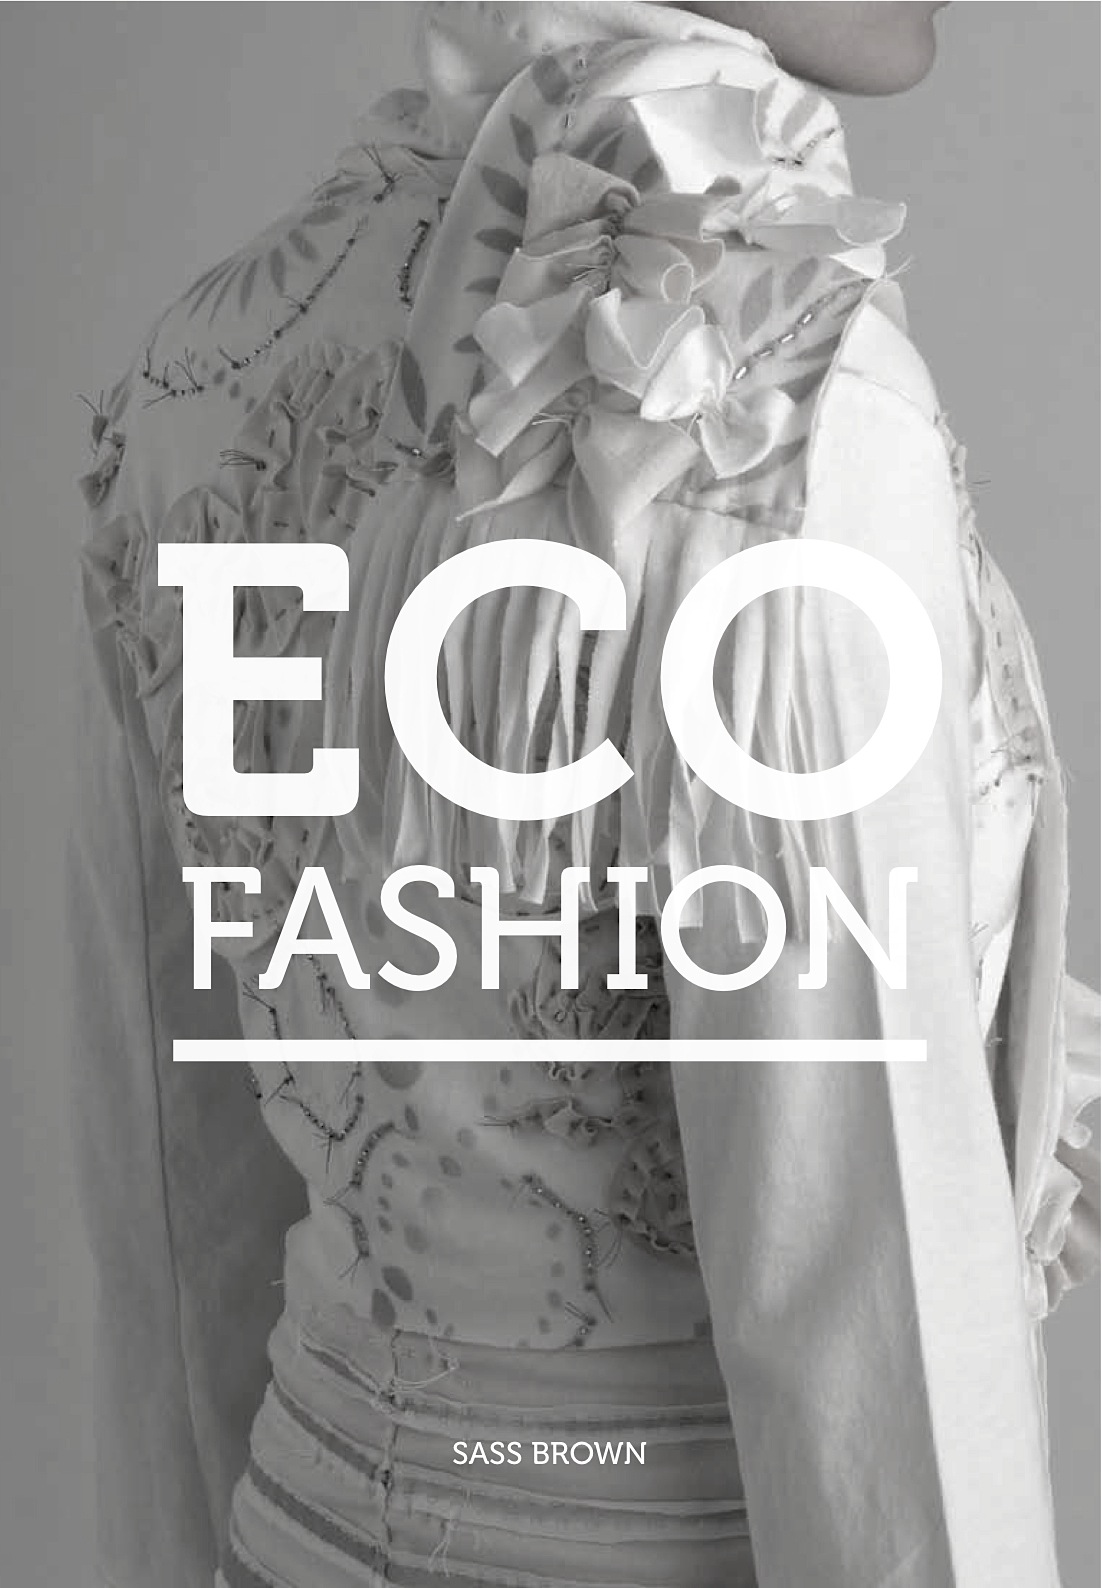 Fashion Book Cover Uk : Geoffrey b small in eco fashion by sass brown